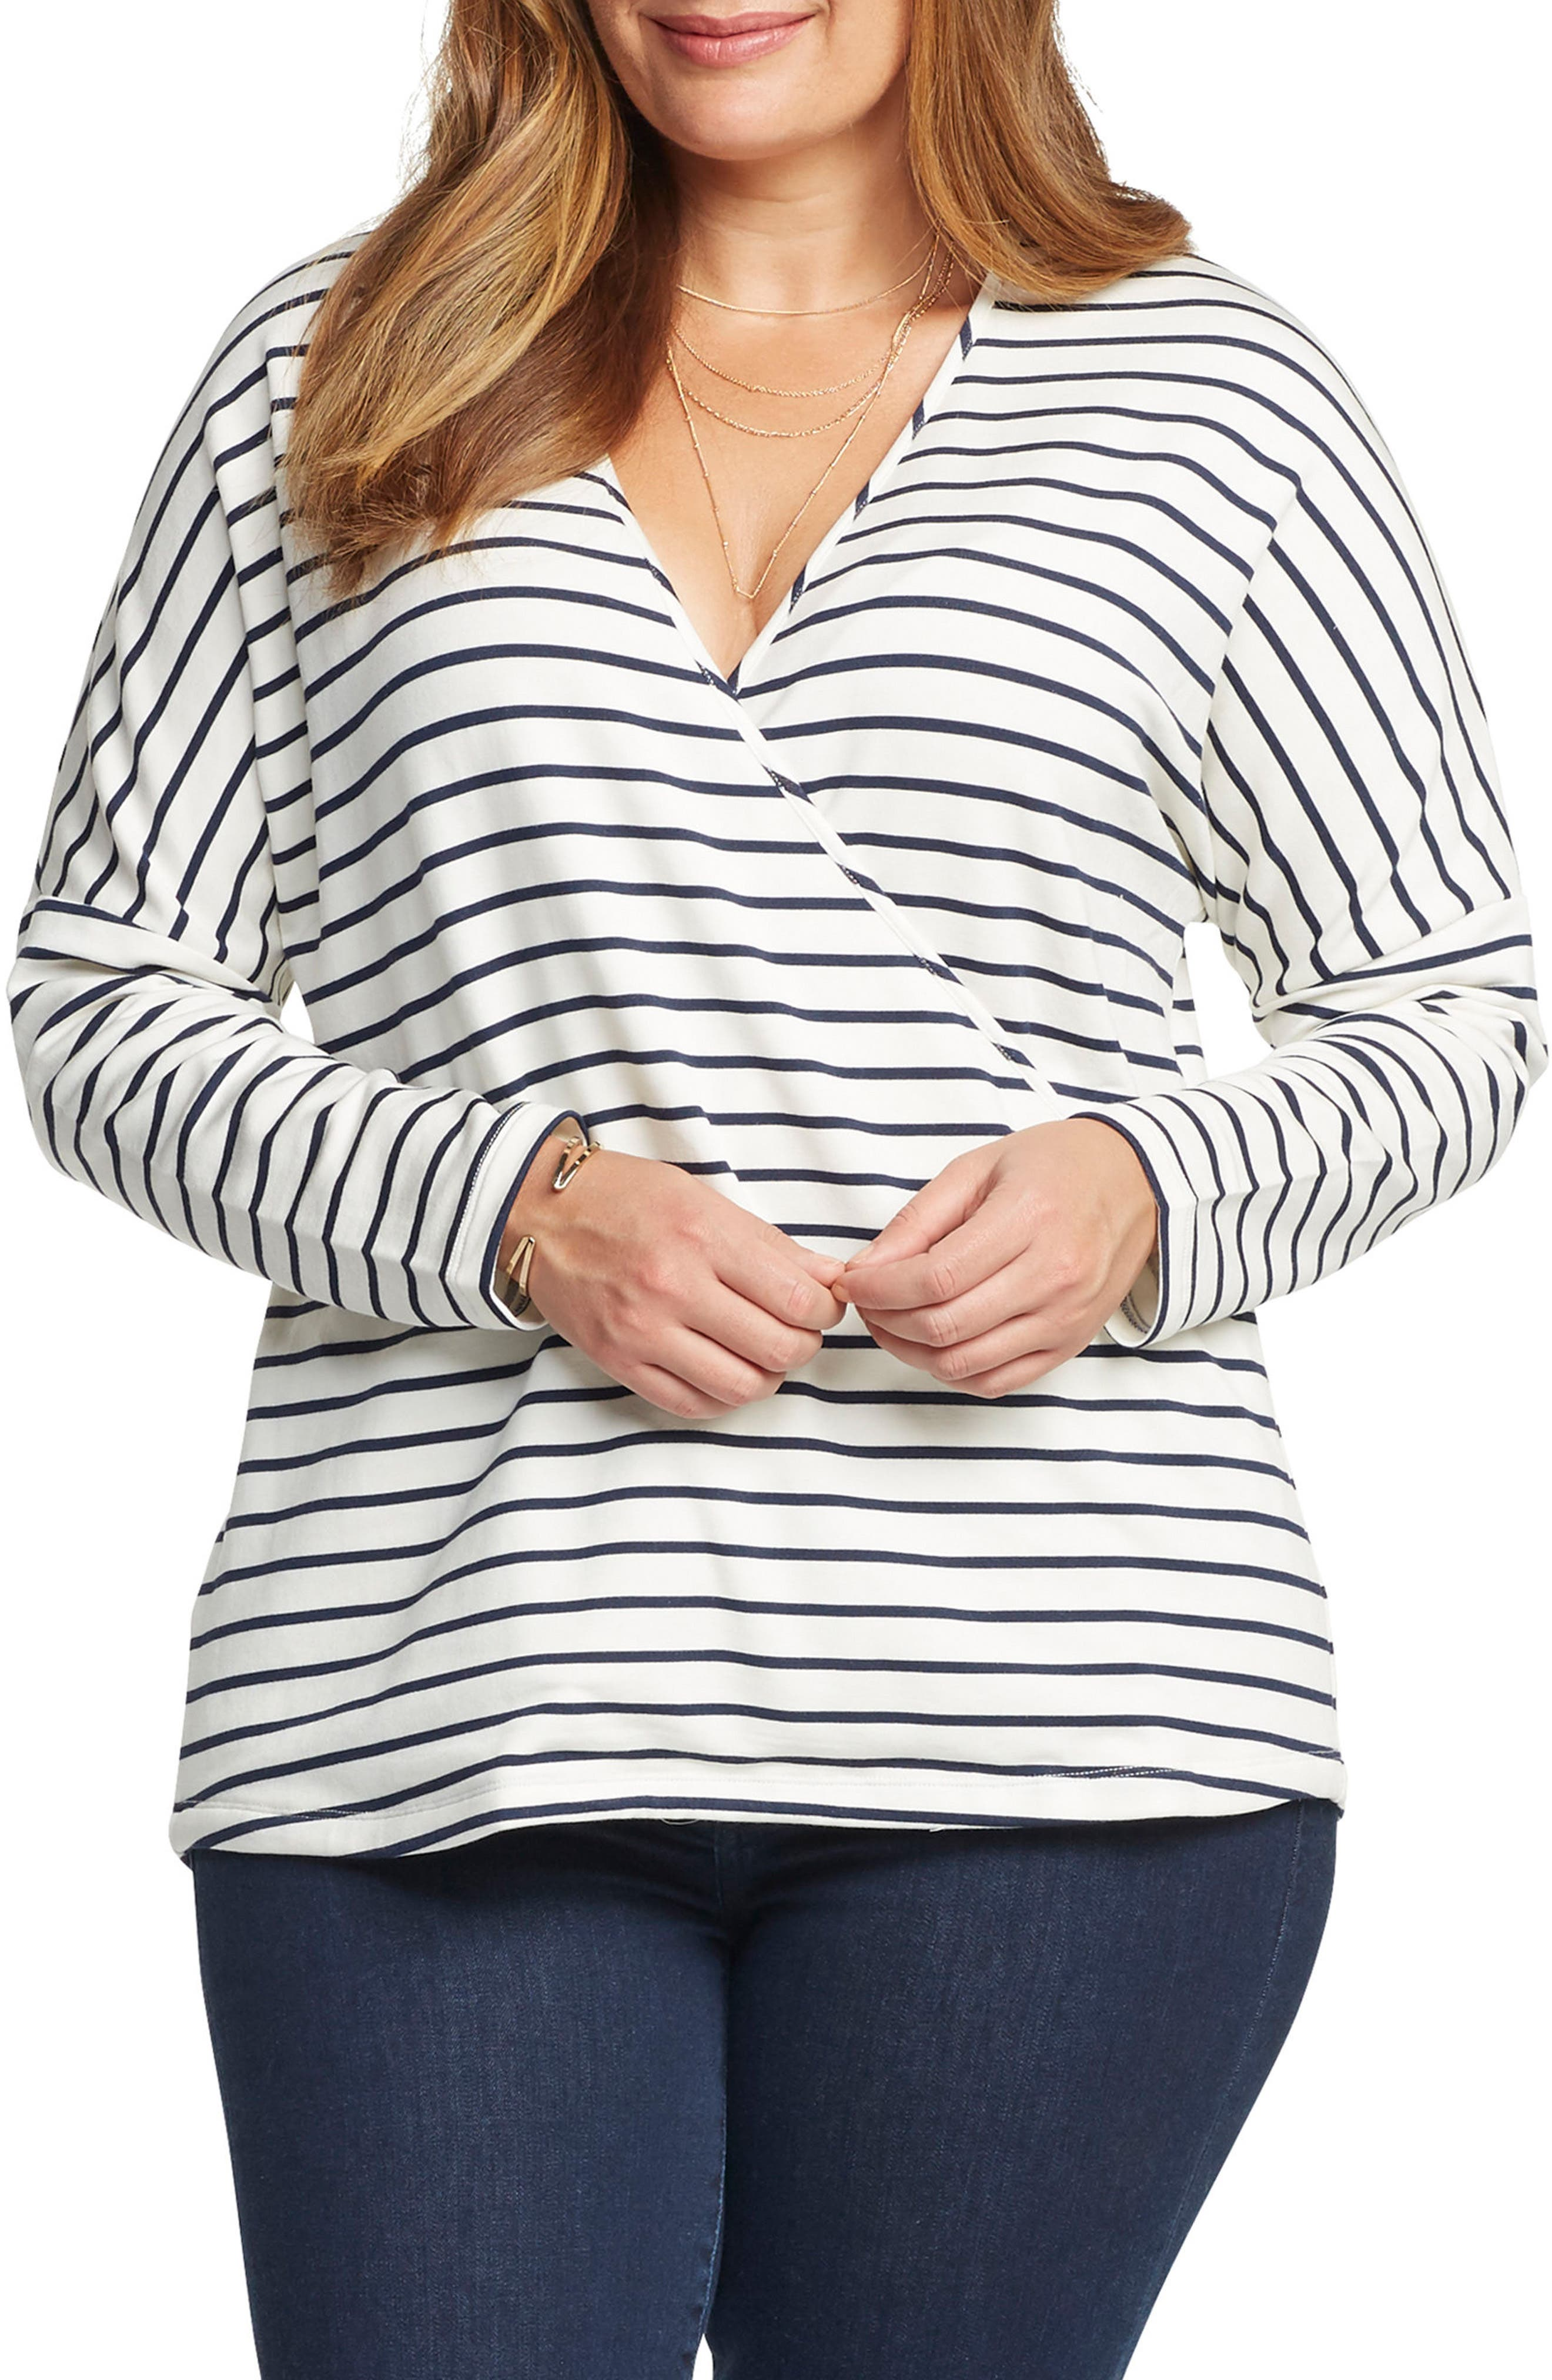 'Julian' Stripe French Terry Surplice Top,                         Main,                         color, White/ Navy